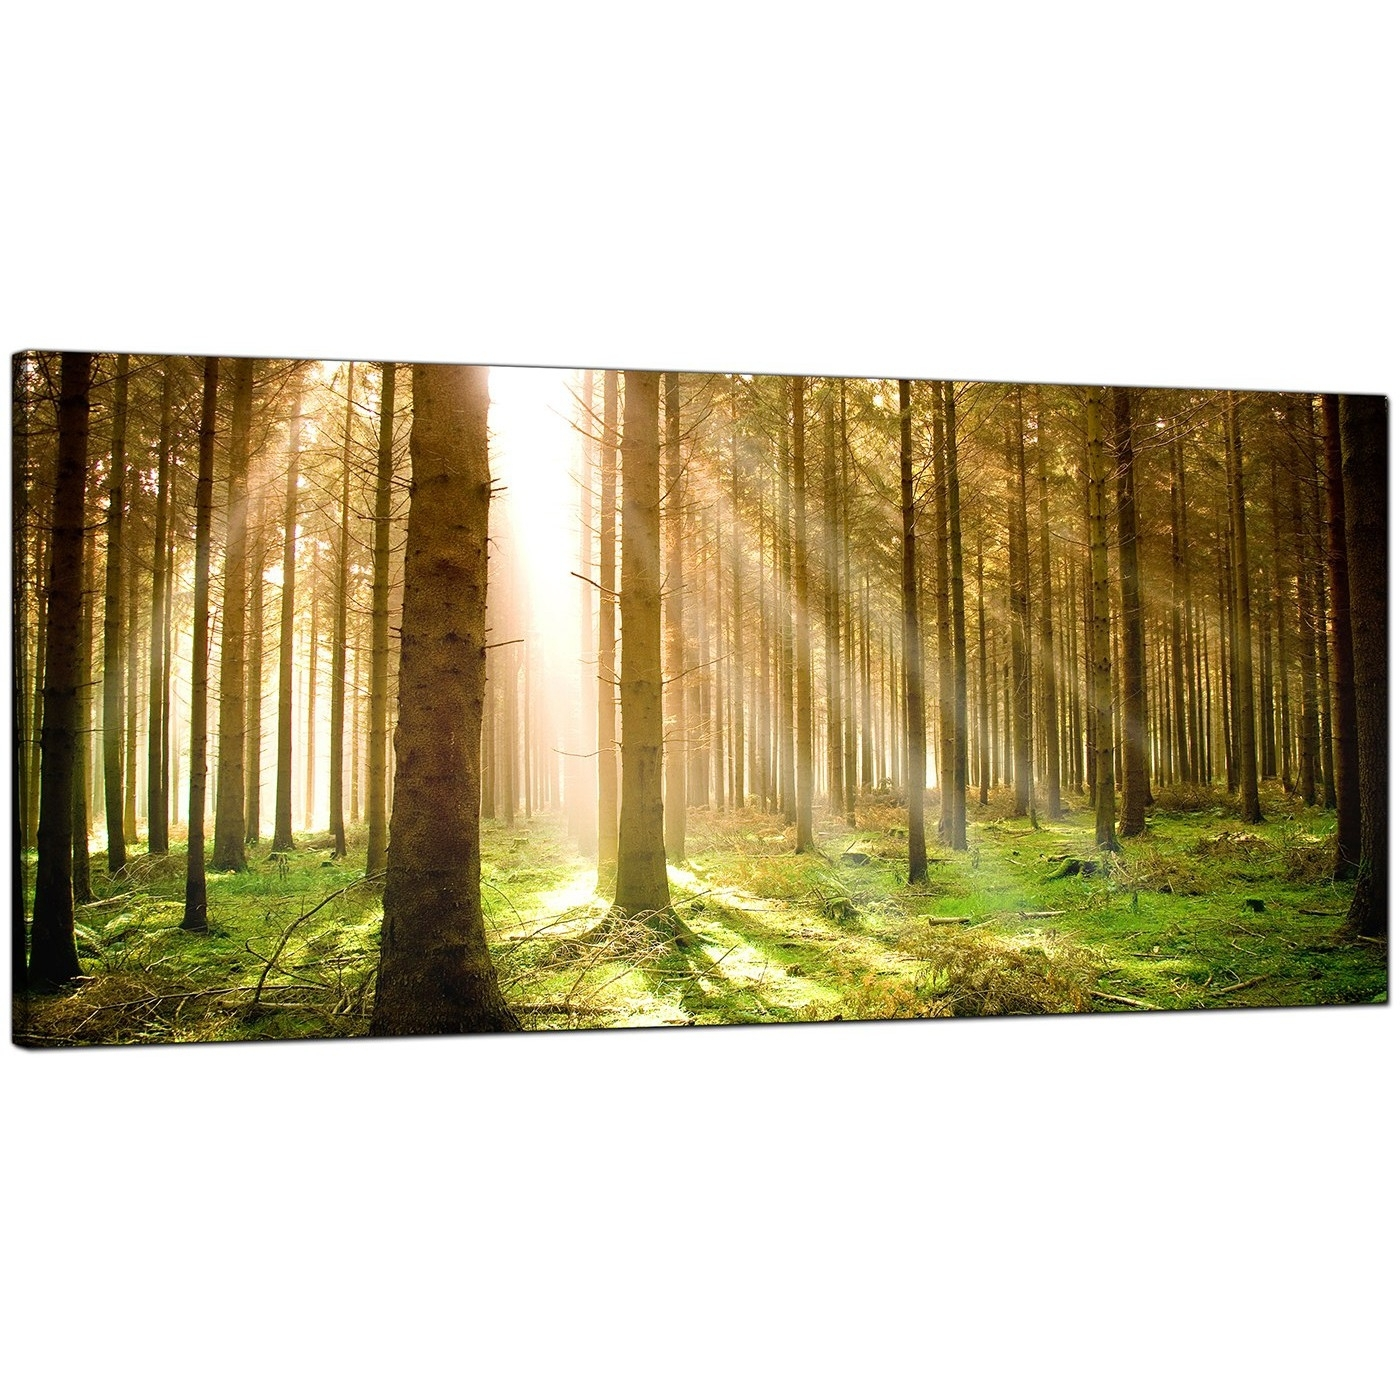 Modern Canvas Prints Of Forest Trees For Your Dining Room In Recent Canvas Wall Art Of Trees (View 7 of 15)